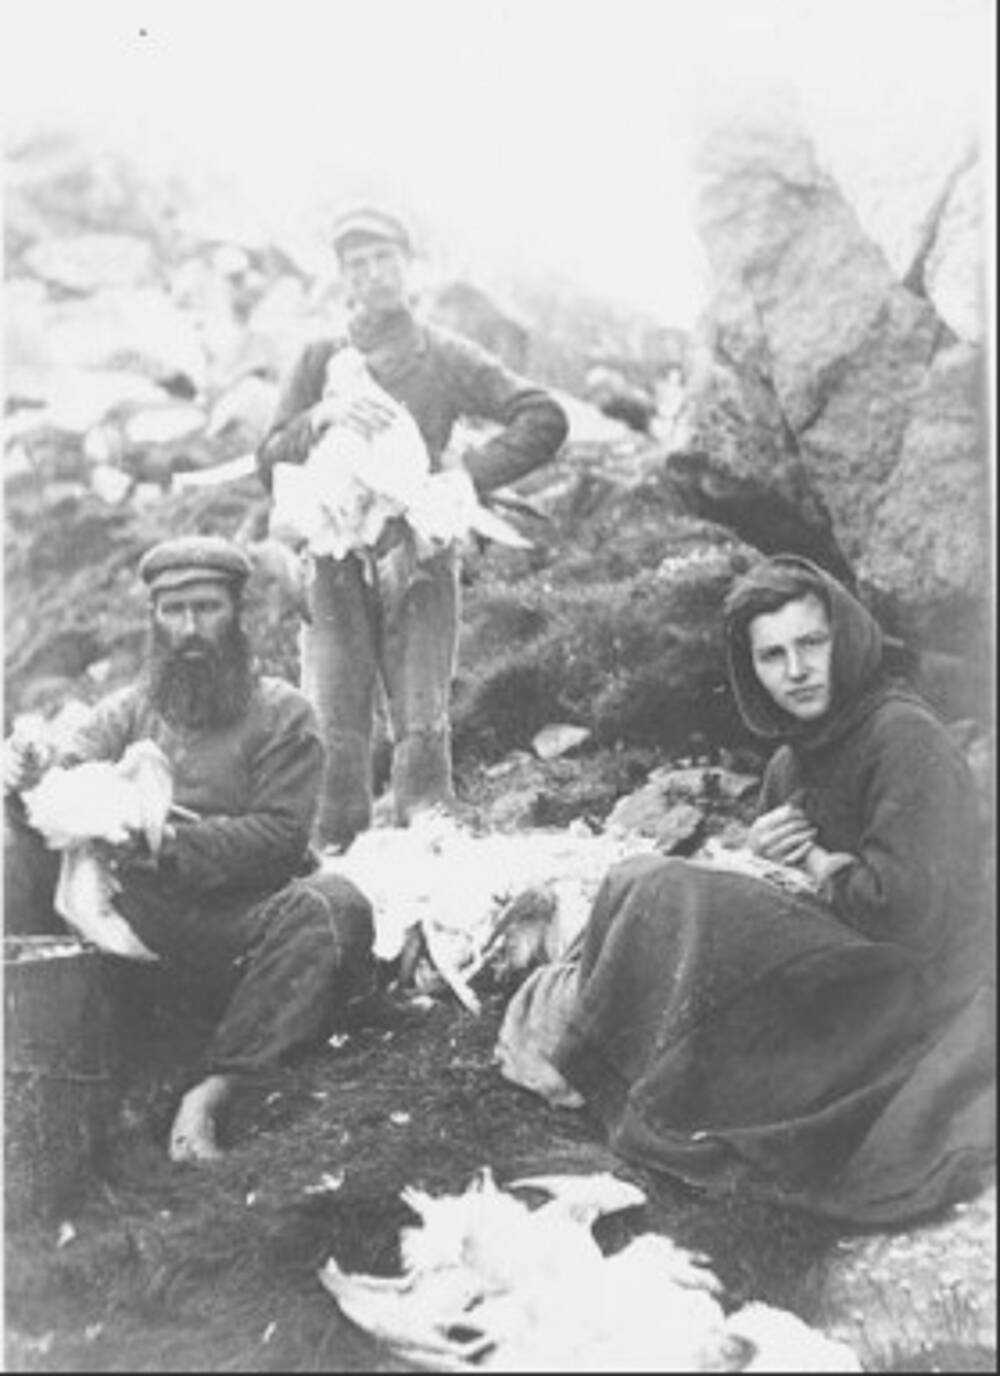 A black and white photo of three people, either holding or sitting beside hunted seabirds.